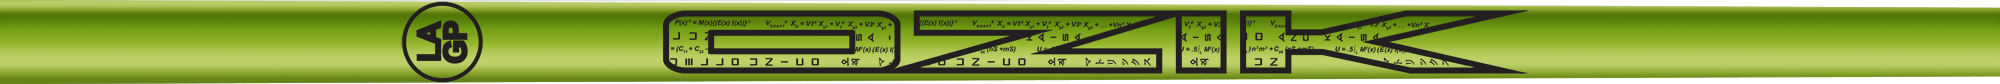 Ozik White Tie: Lime Green Black Gloss - Wood 60 R